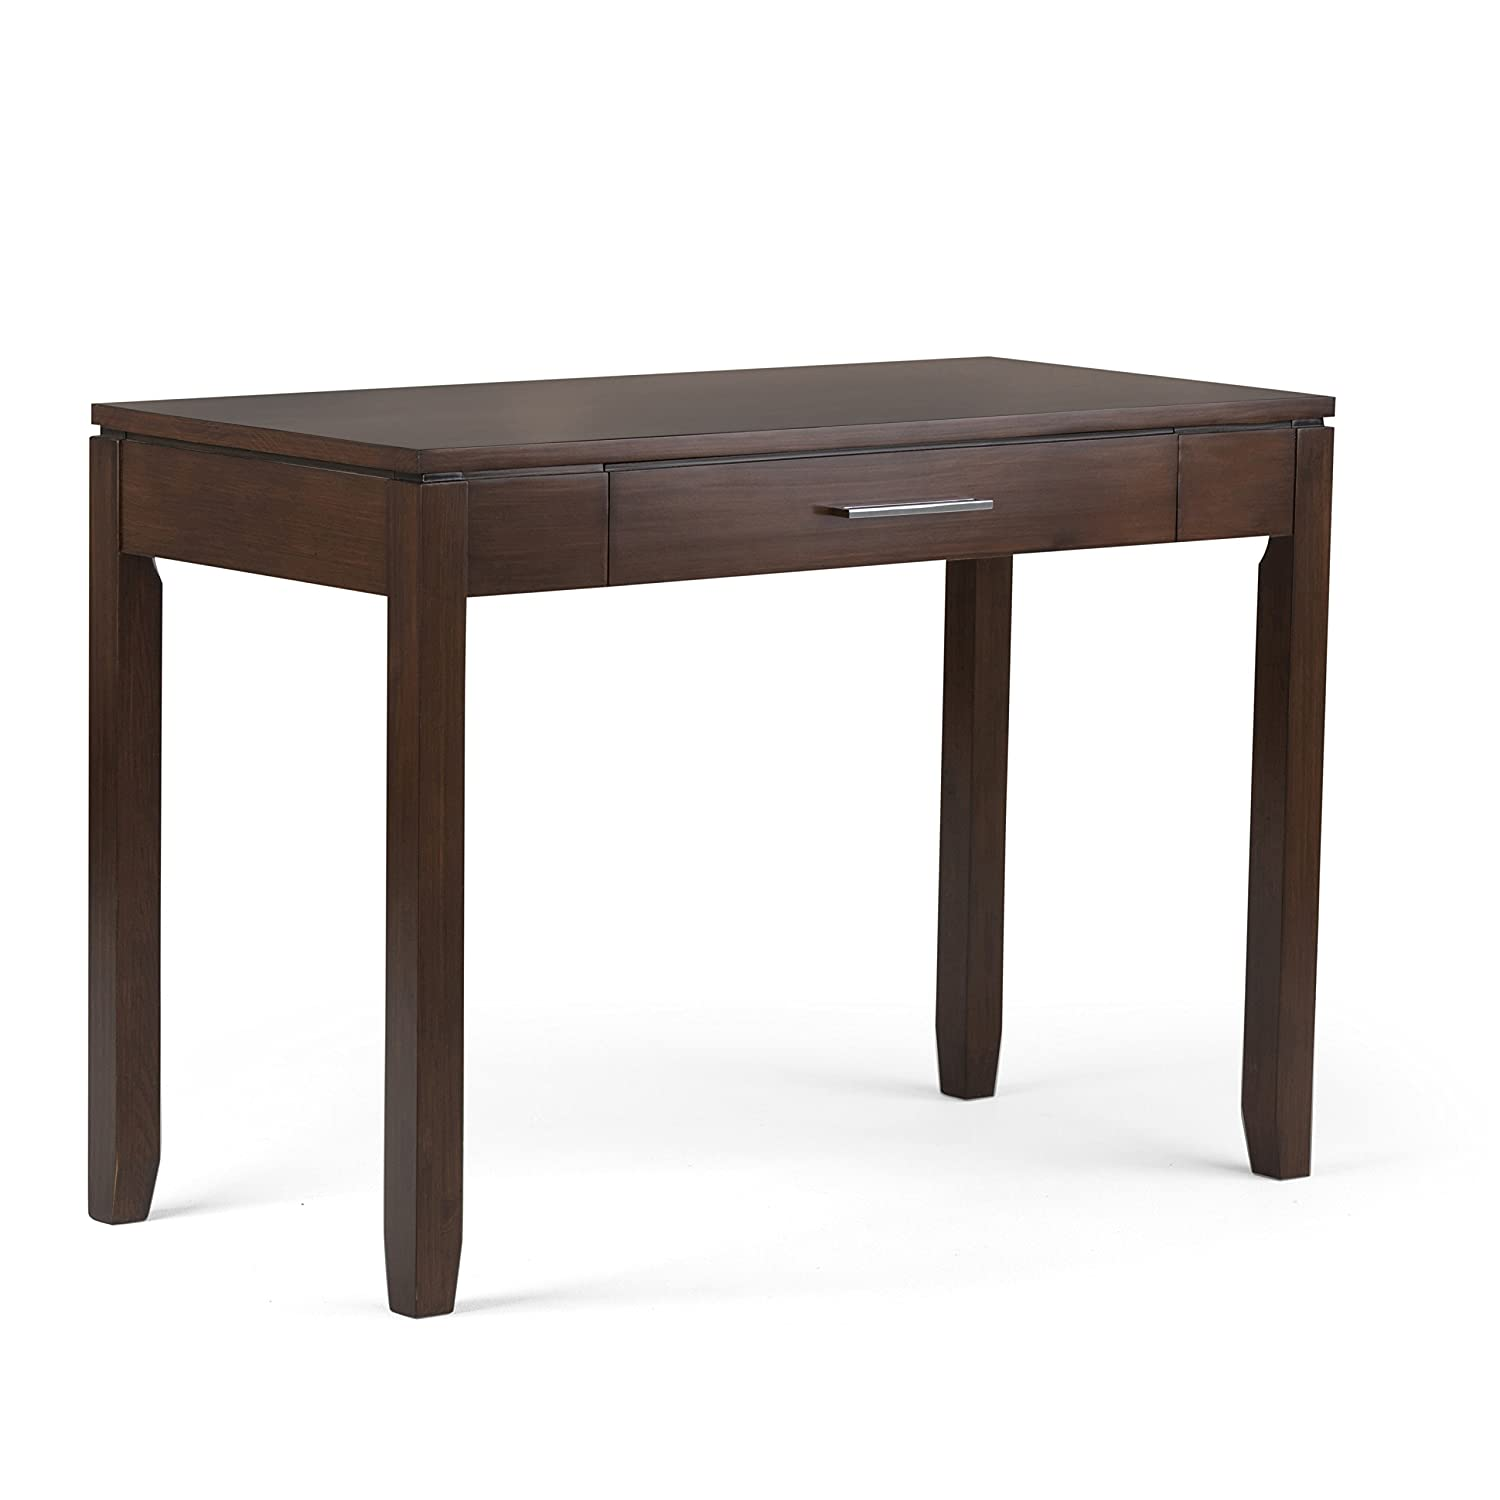 Simpli Home Cosmopolitan Collection Office Desk, Medium Auburn Brown CCT Global Sourcing AXCCOS008